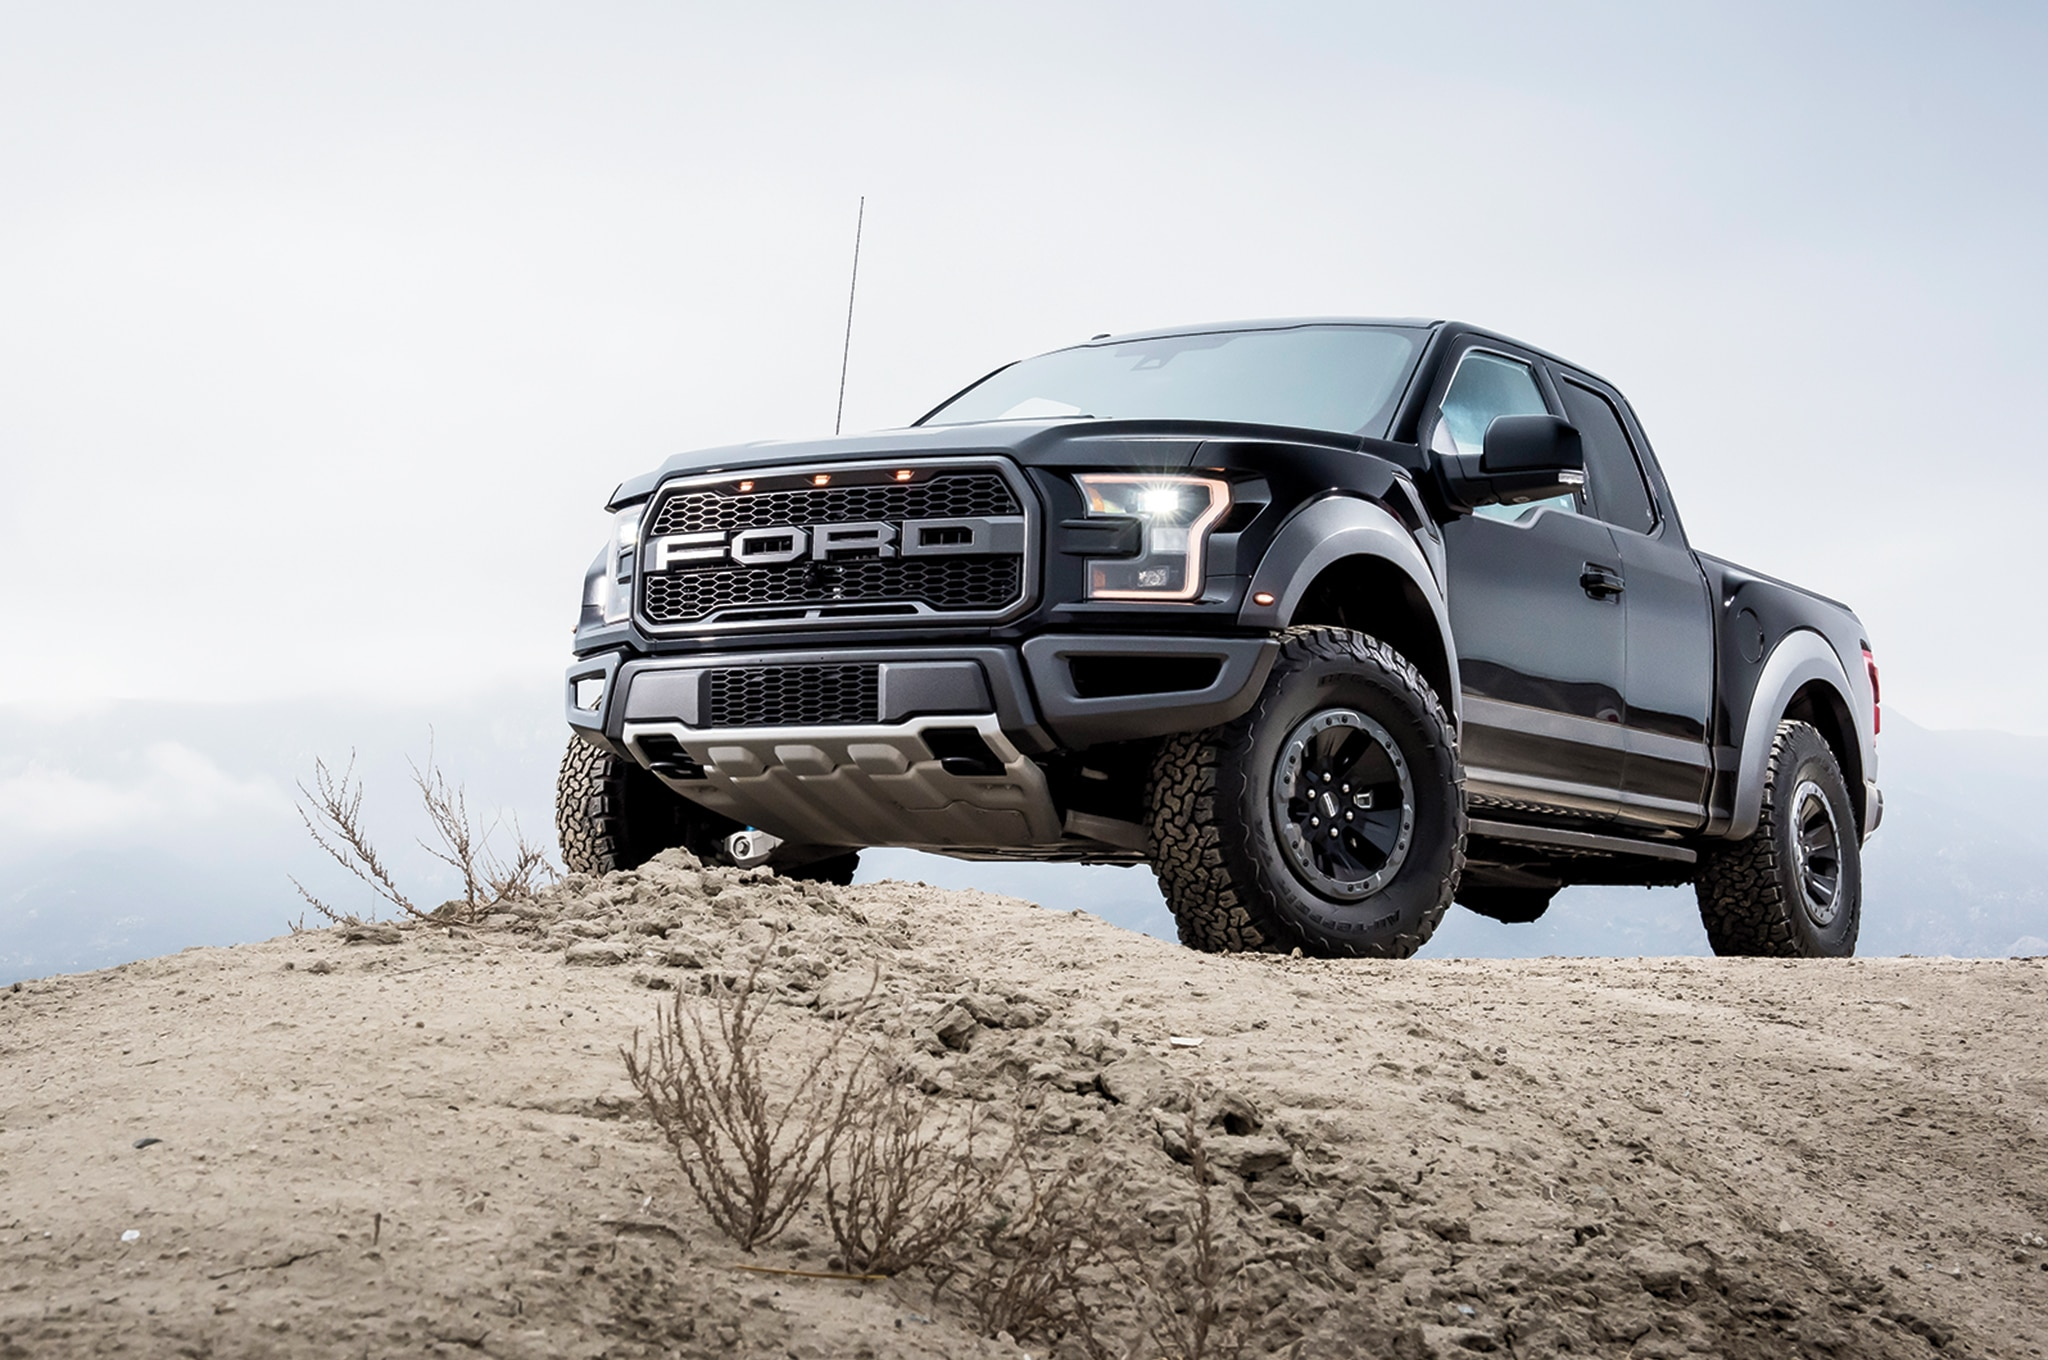 Getting to Know the 2017 Ford Raptor with the Man Who Knows It Best